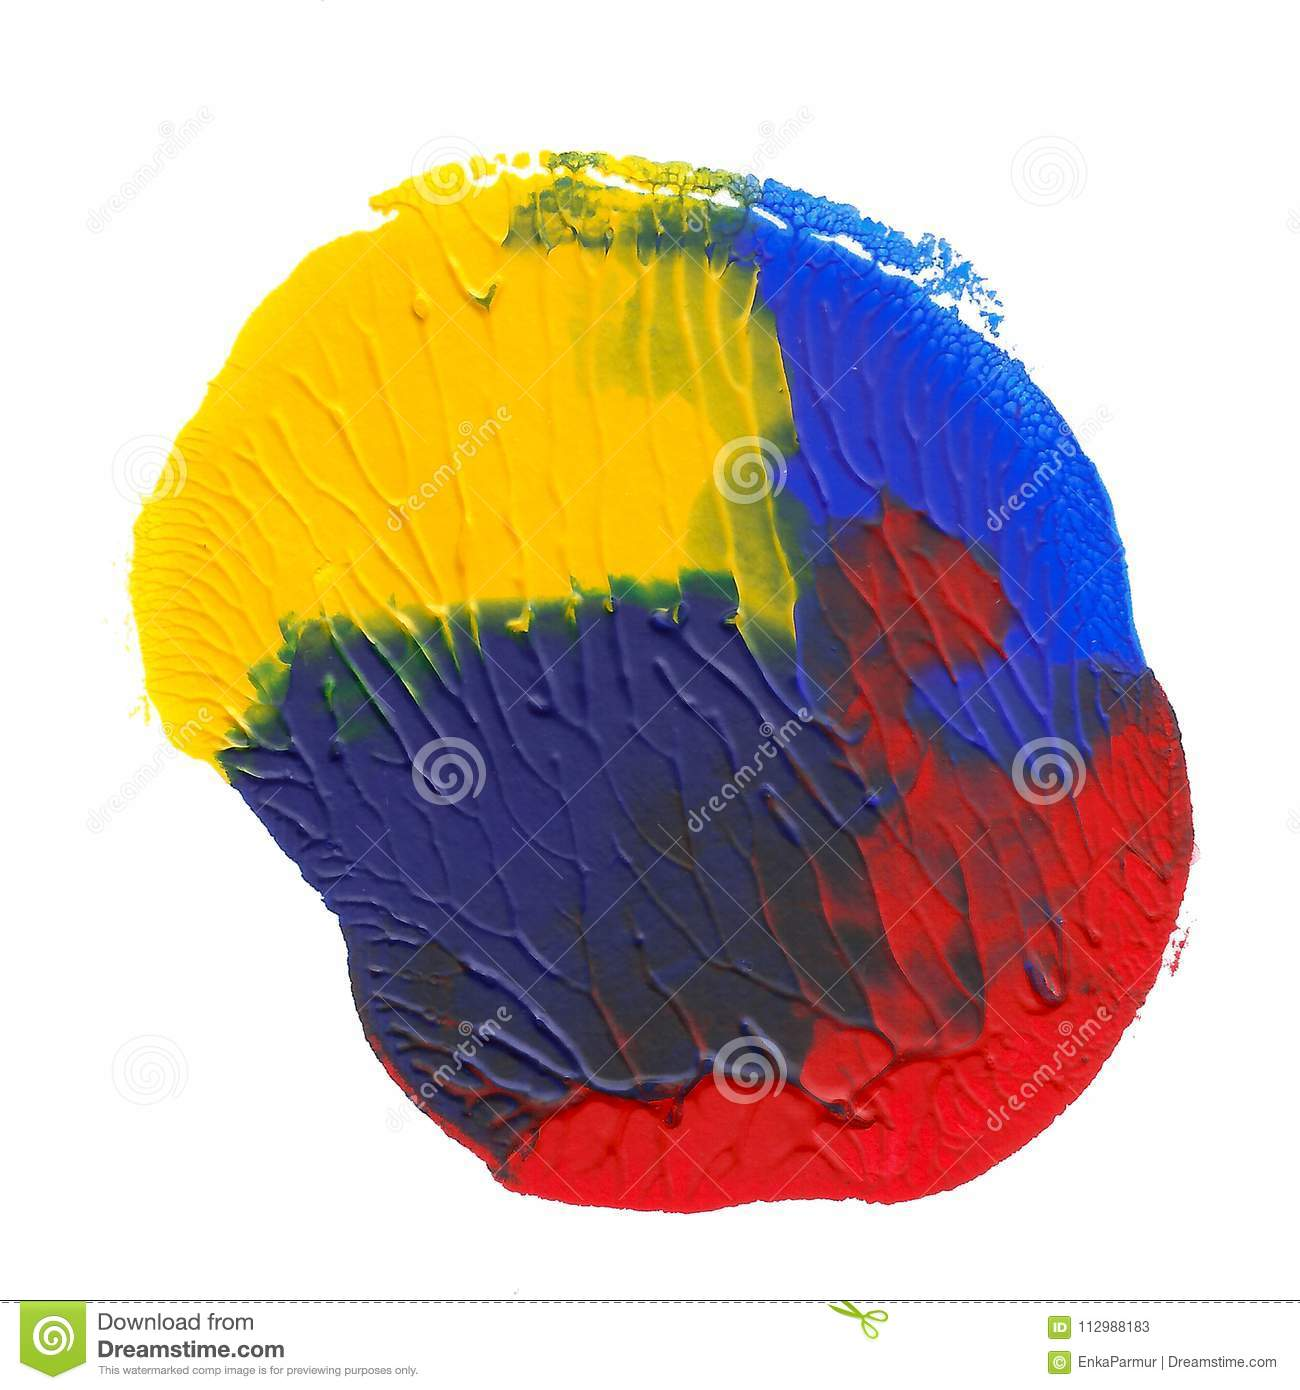 Abstract acrylic spot isolated on white background. Yellow, blue, red vibrant color. Monotyped hand drawn grunge